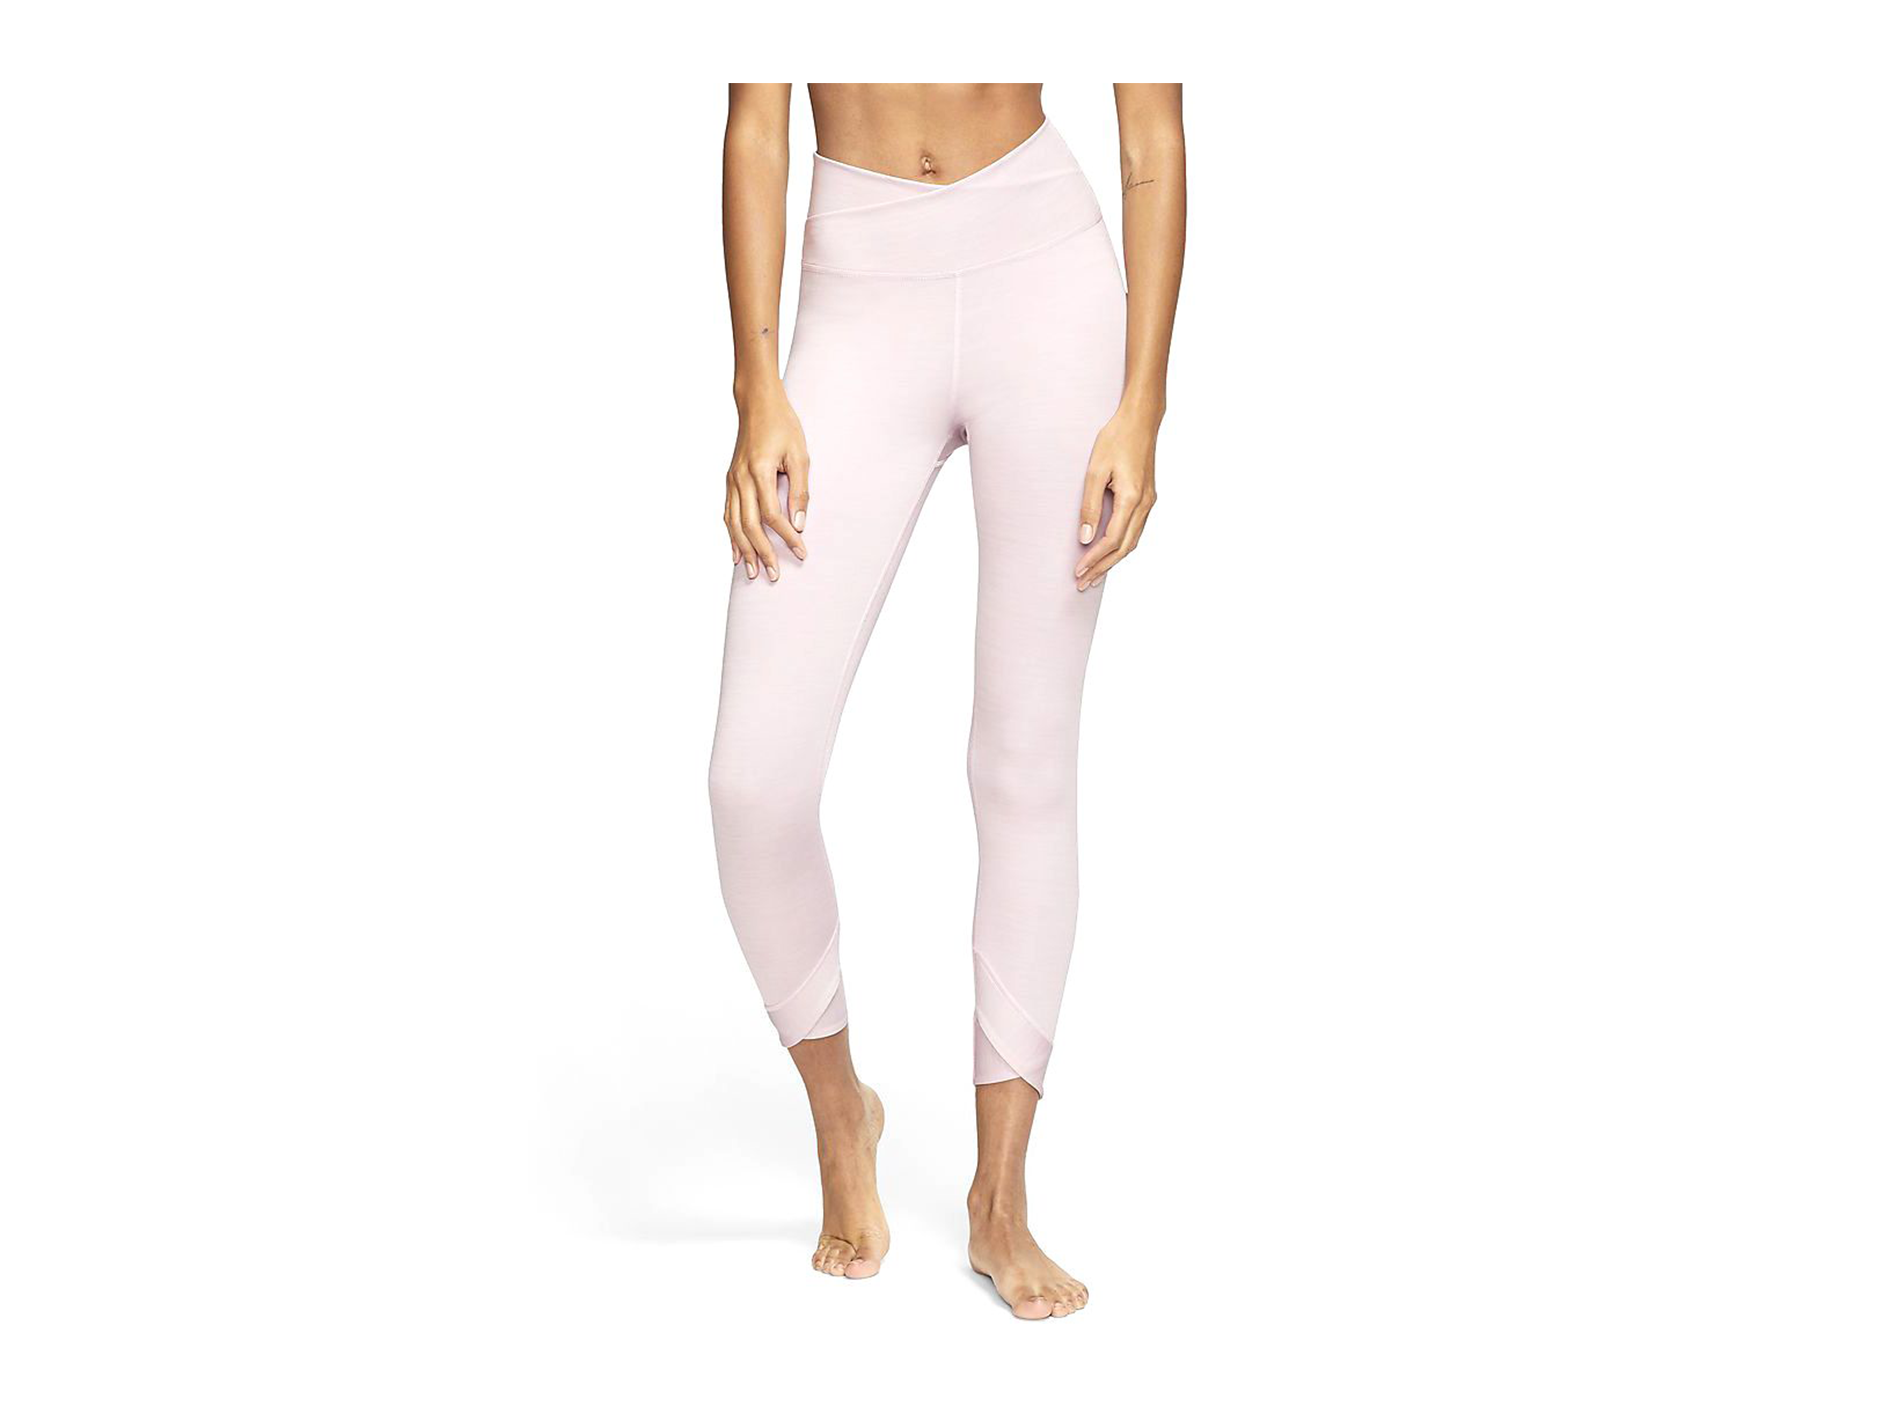 Casual Sports Pants for Fitness,Active running YINI Womens Leggings Sport Tights Workout